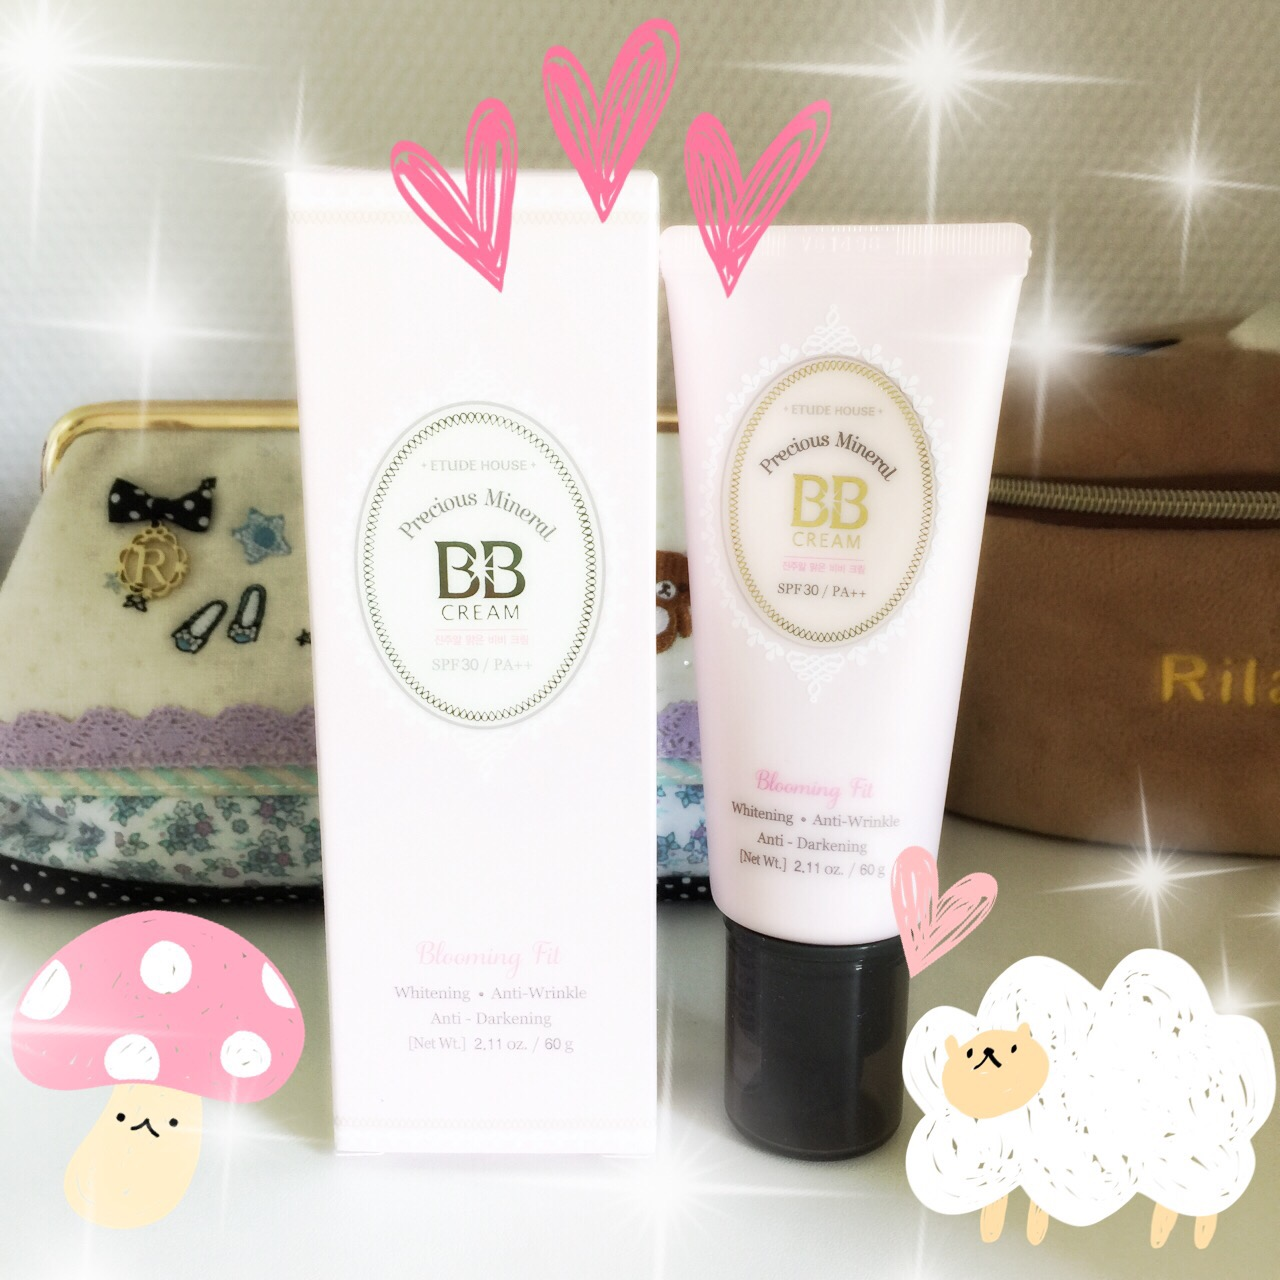 etude house precious mineral bb cream